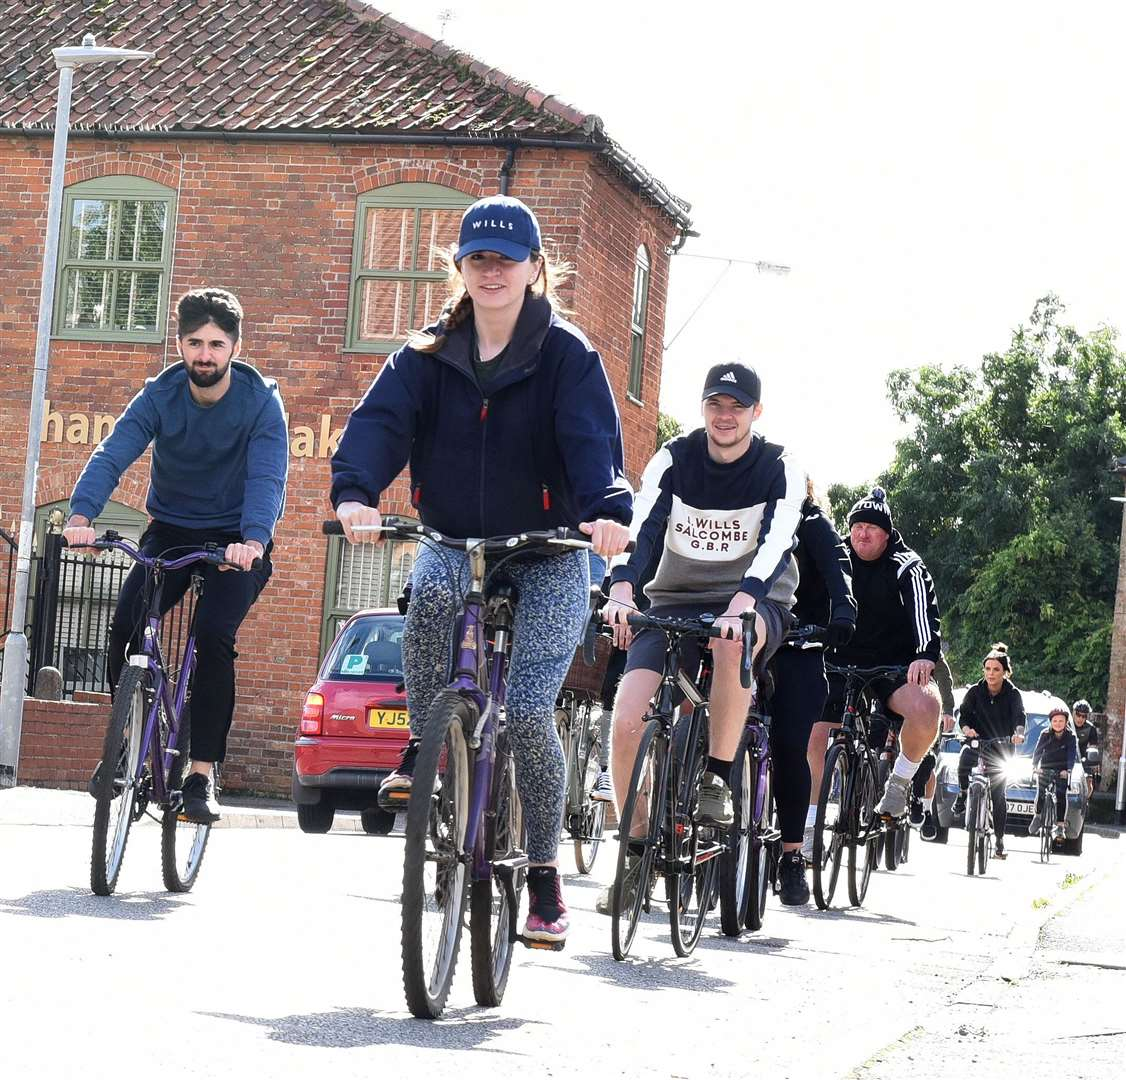 Some of the riders involved in the Bike ride around the Swaffham area over the weekend. Pictures: Paul Marsh